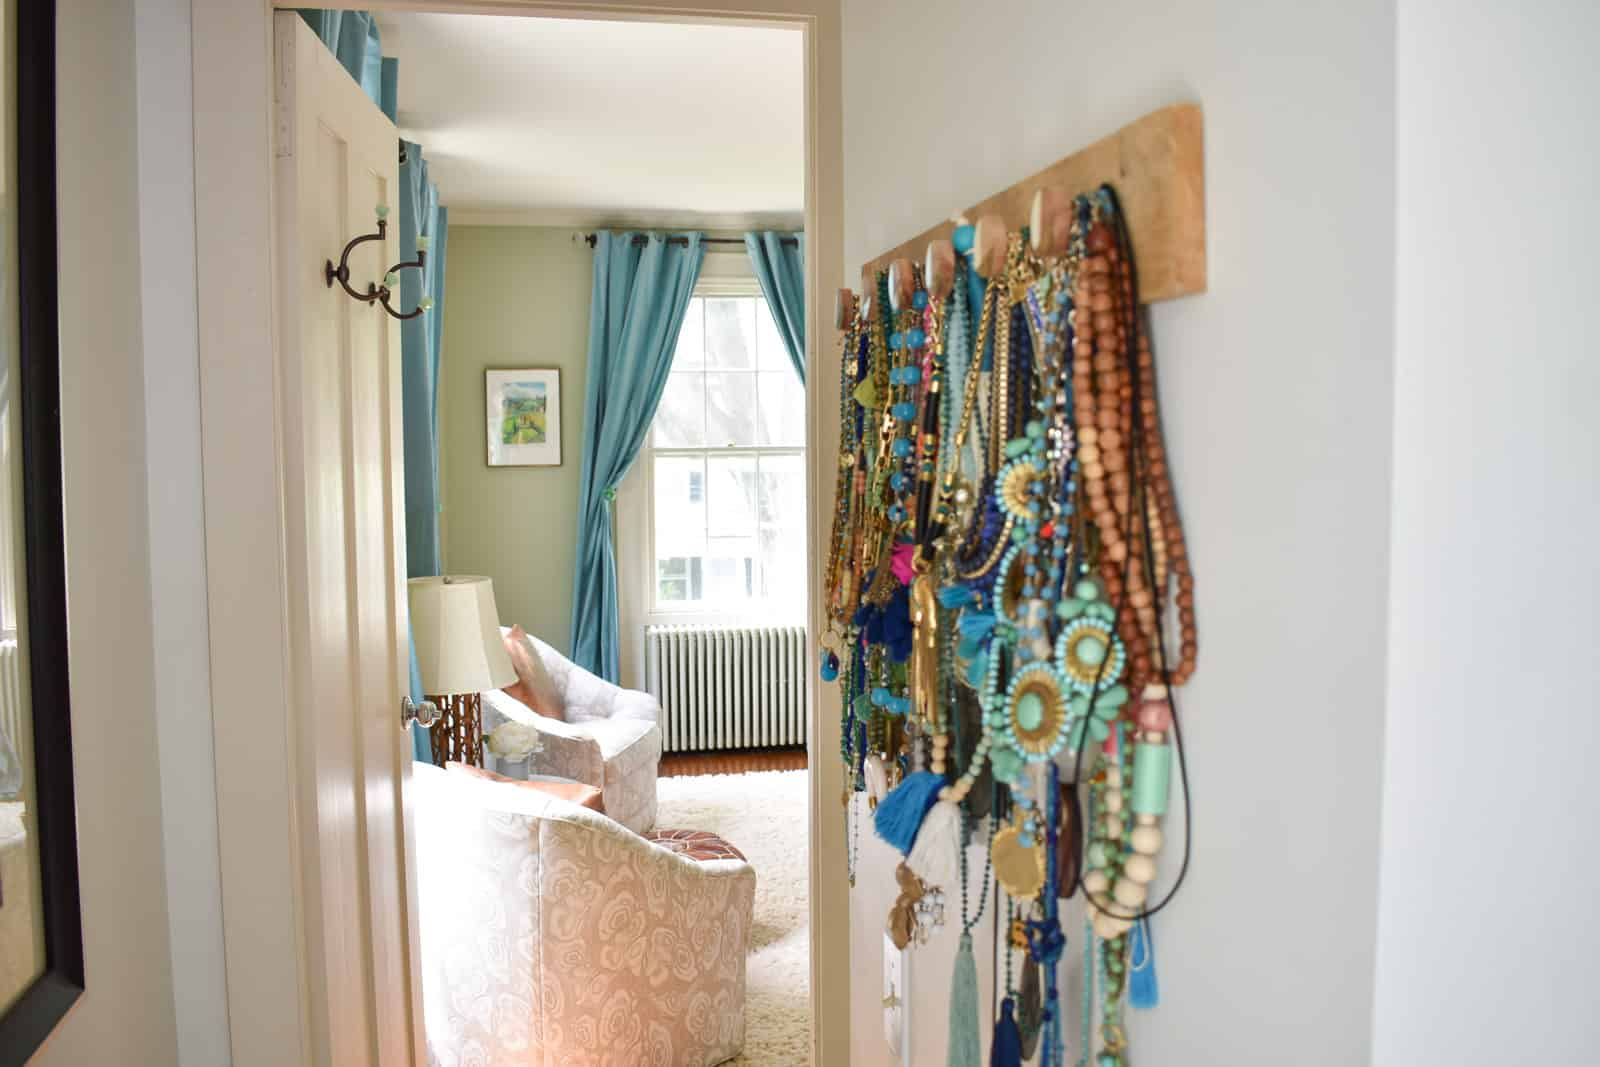 jewelry hanging on hooks before